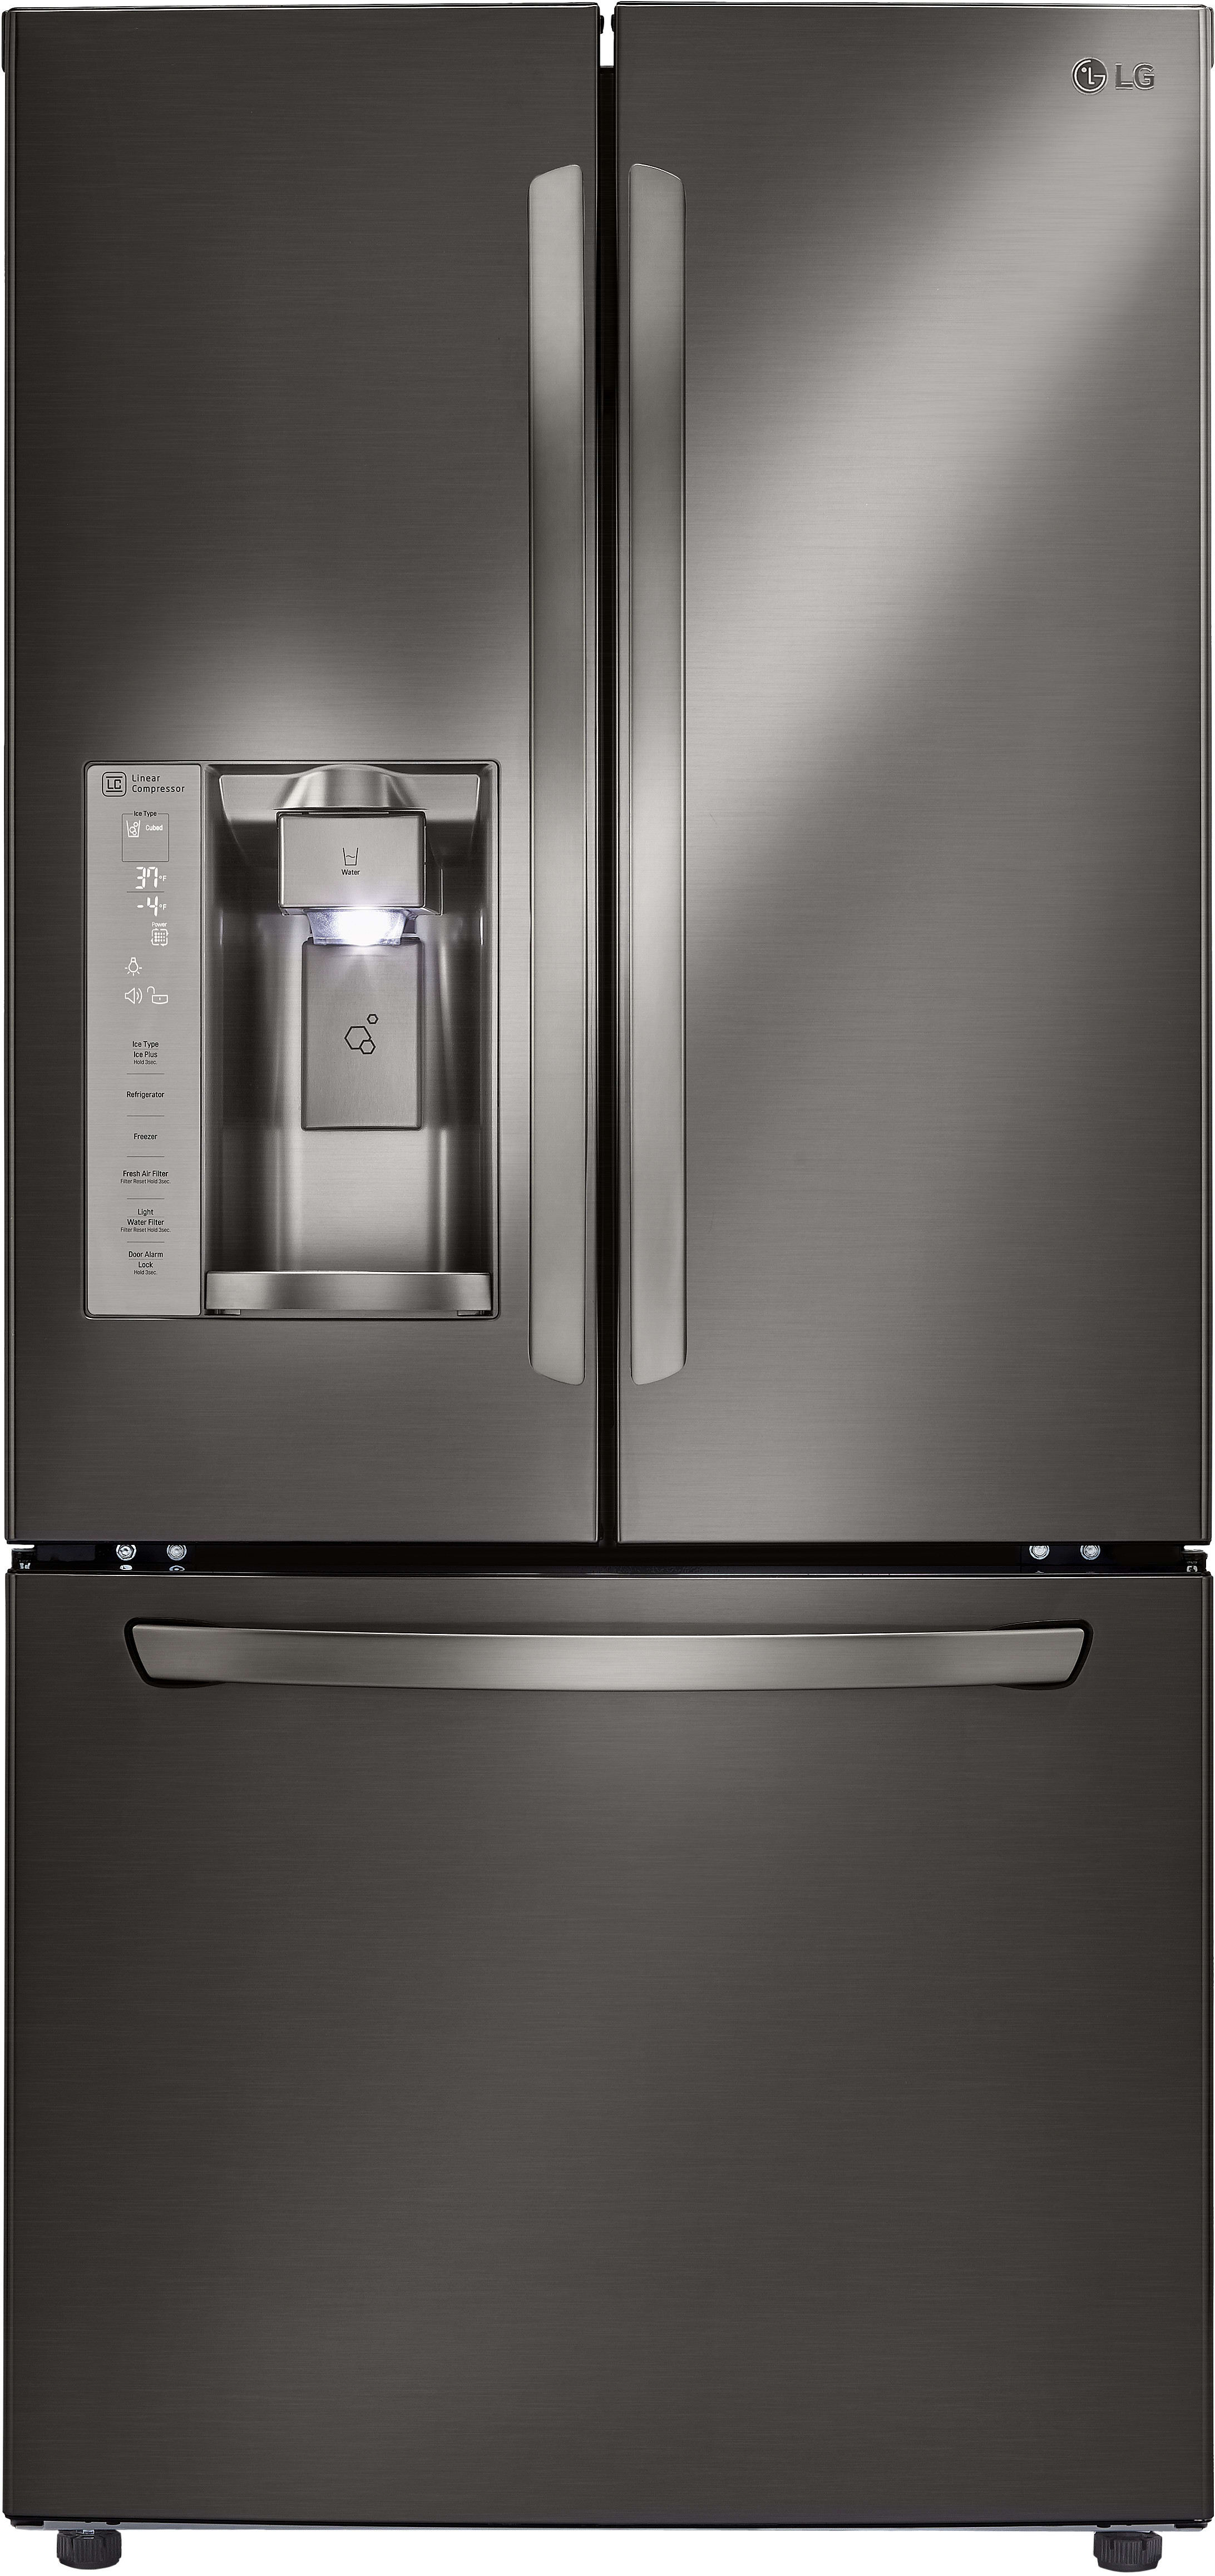 LG LFXS D 33 Inch French Door Refrigerator with Slim SpacePlus